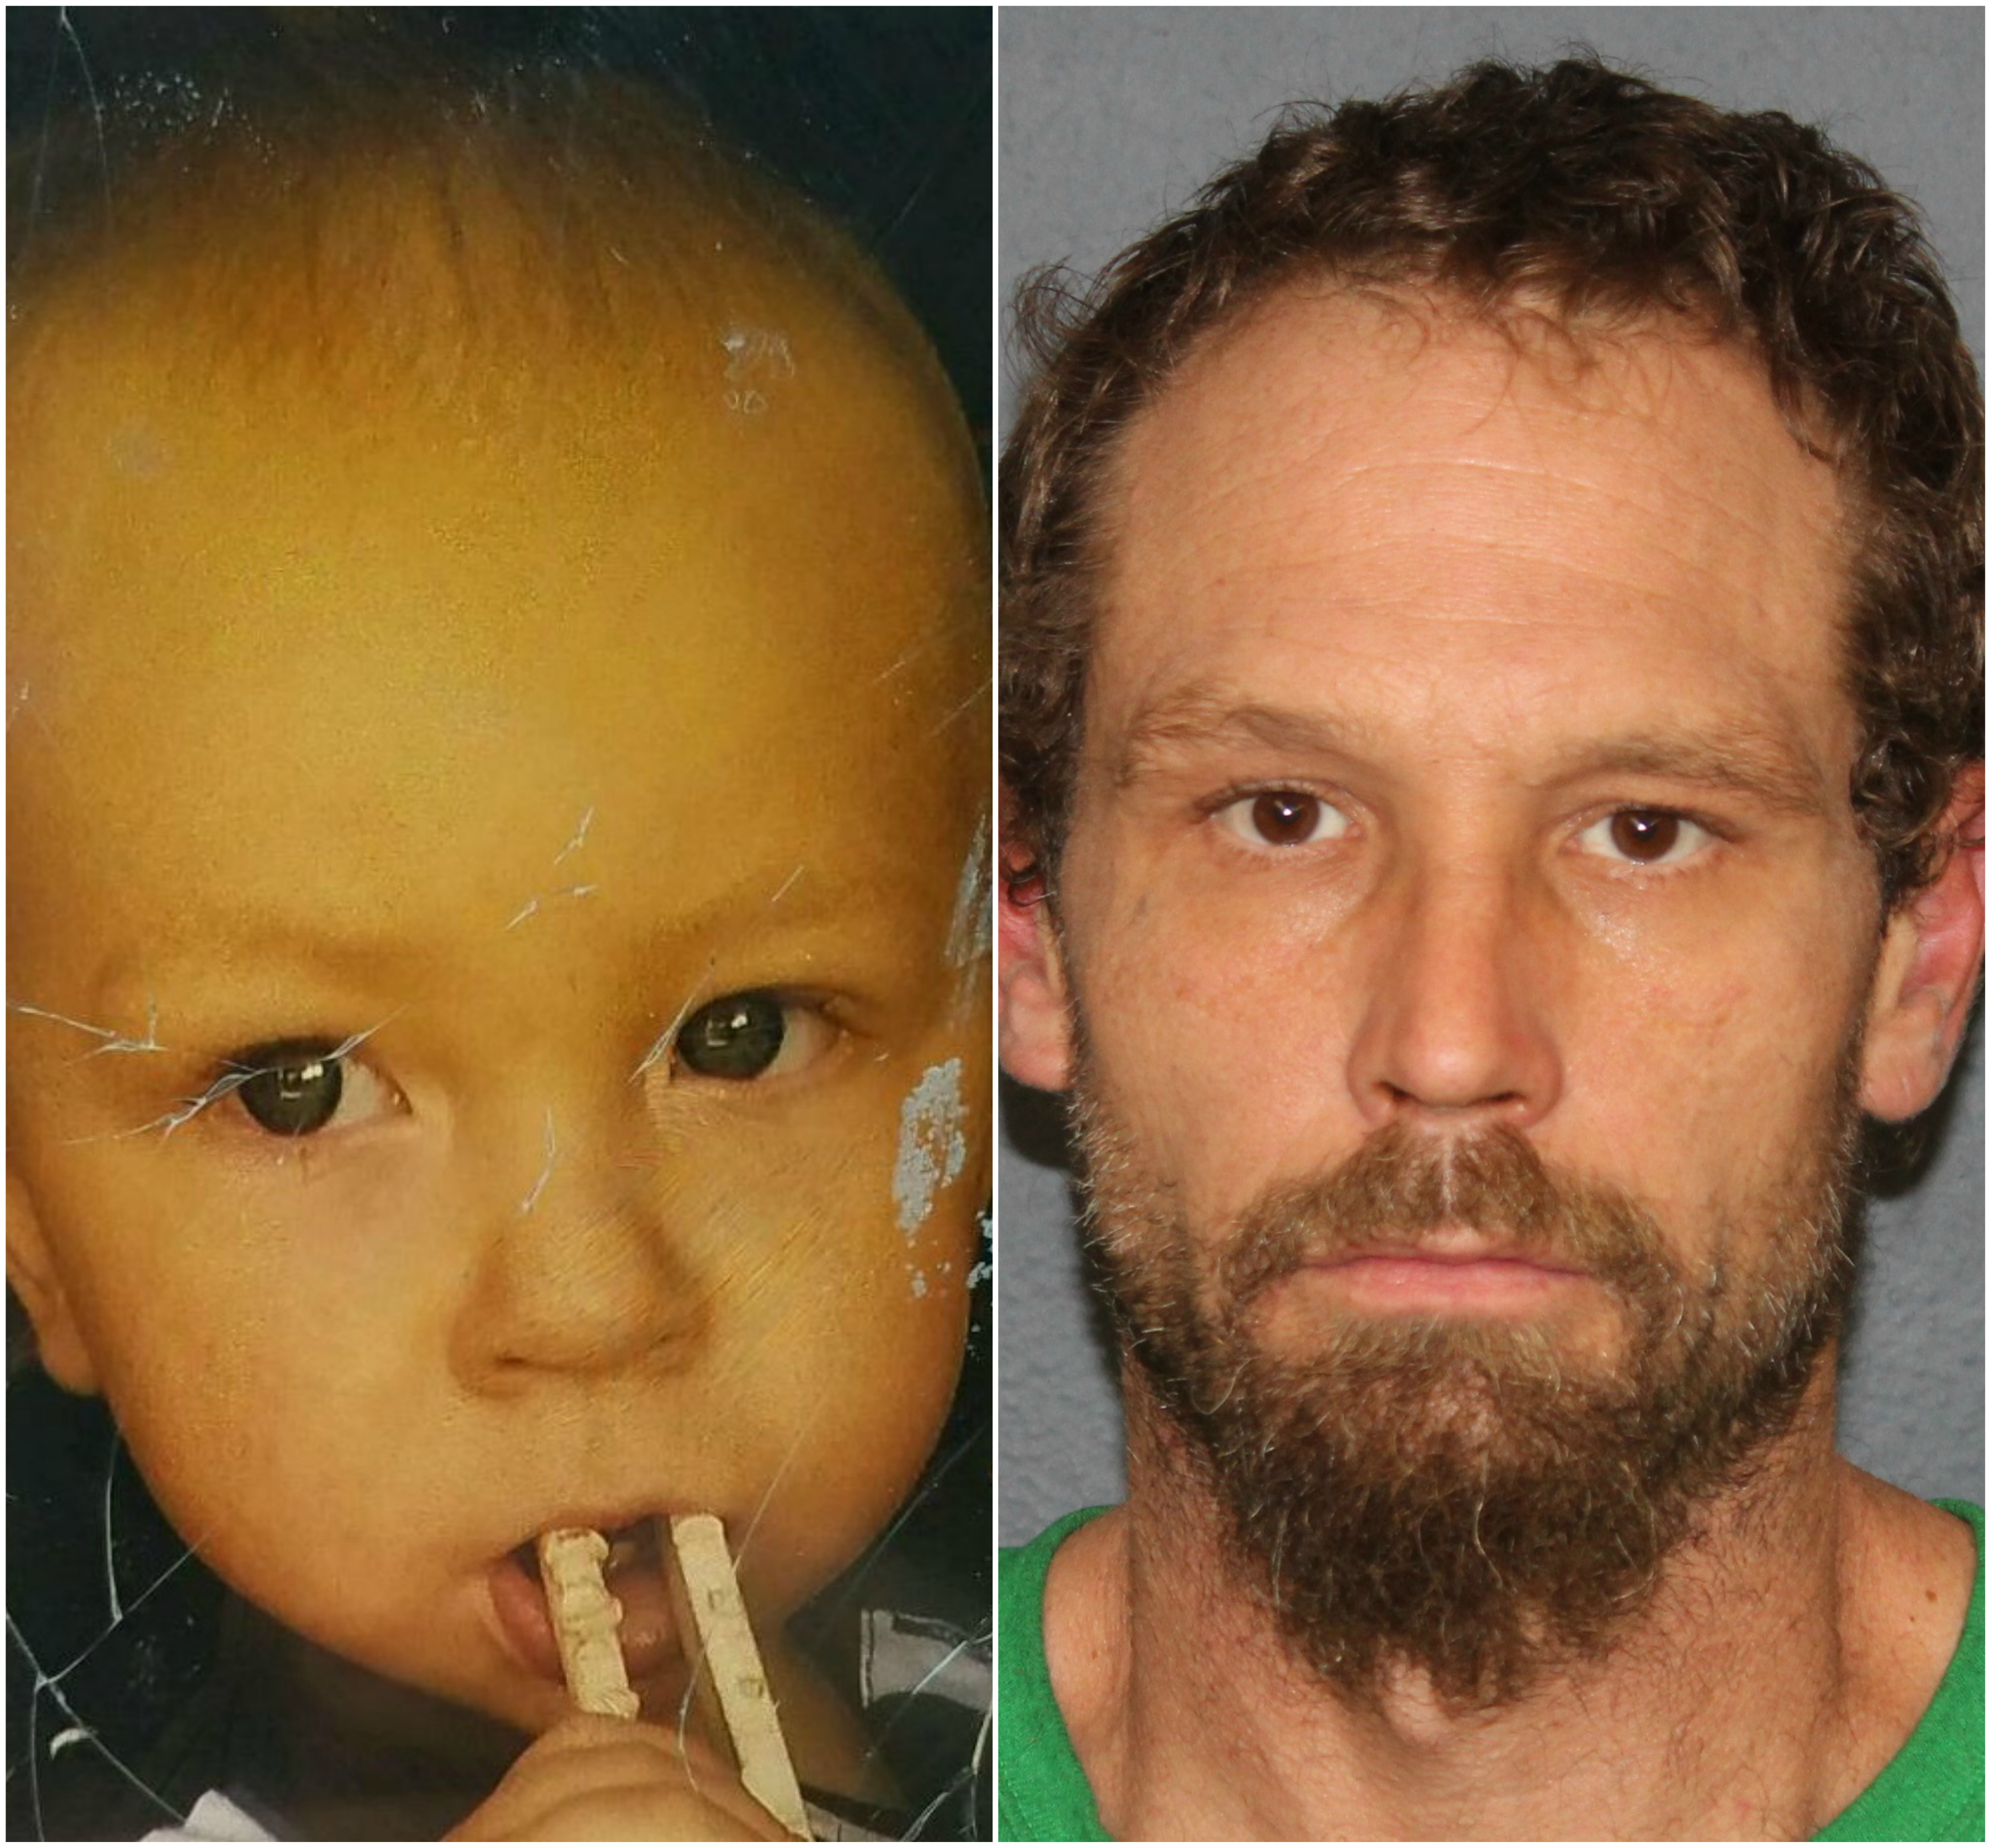 Amber Alert issued for infant taken by convicted felon